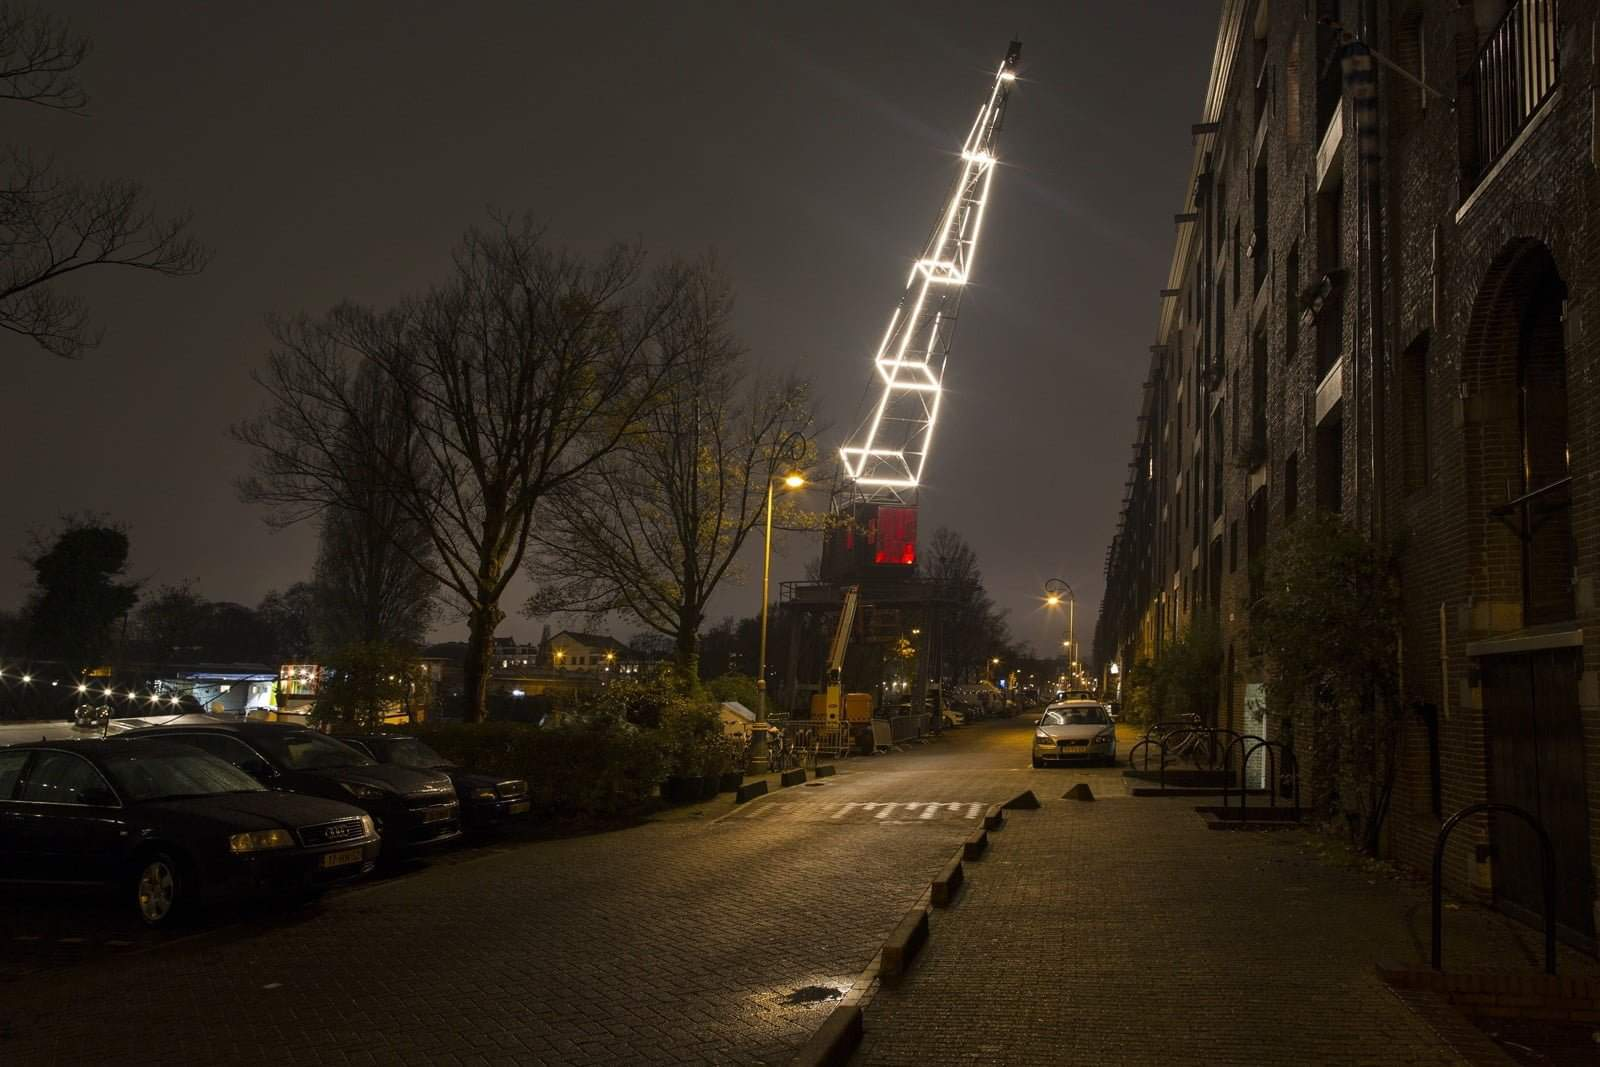 Between the Lines by Har Hollands - Amsterdam Light Festival 2019 - Photo Copyright Janus van den Eijnden (2)